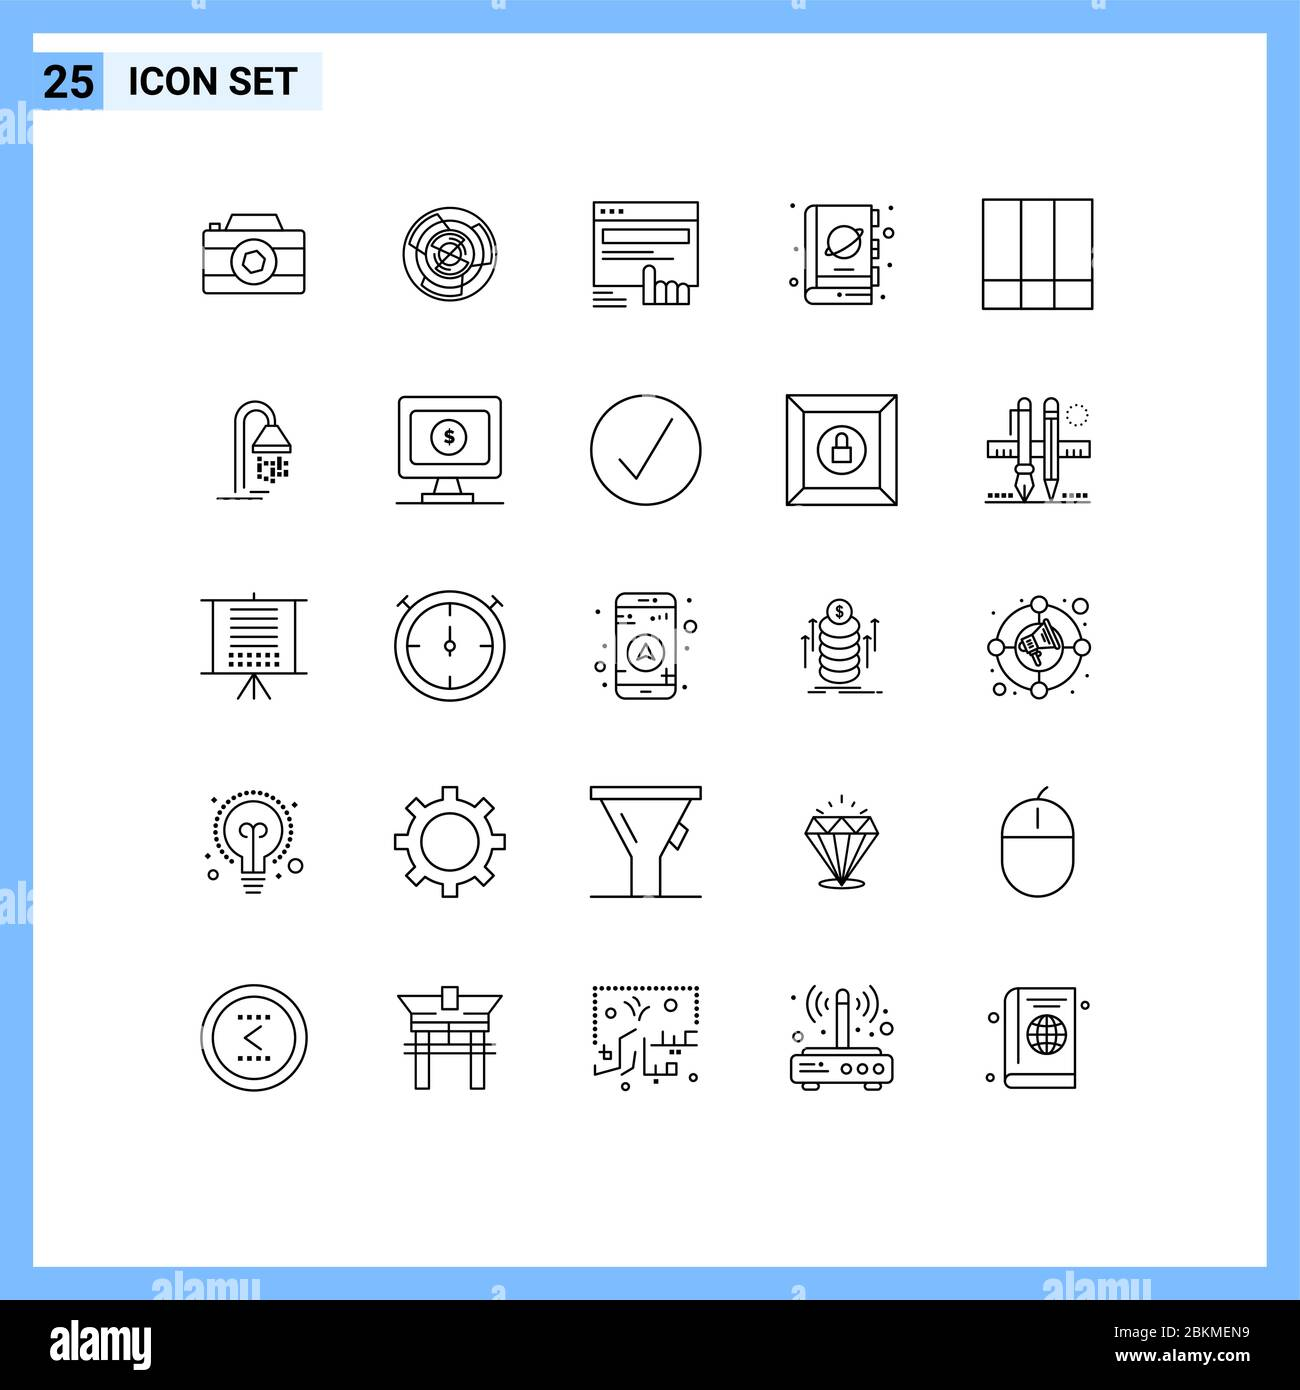 25 Thematic Vector Lines and Editable Symbols of fiction, website, labyrinth, web, finger Editable Vector Design Elements Stock Vector